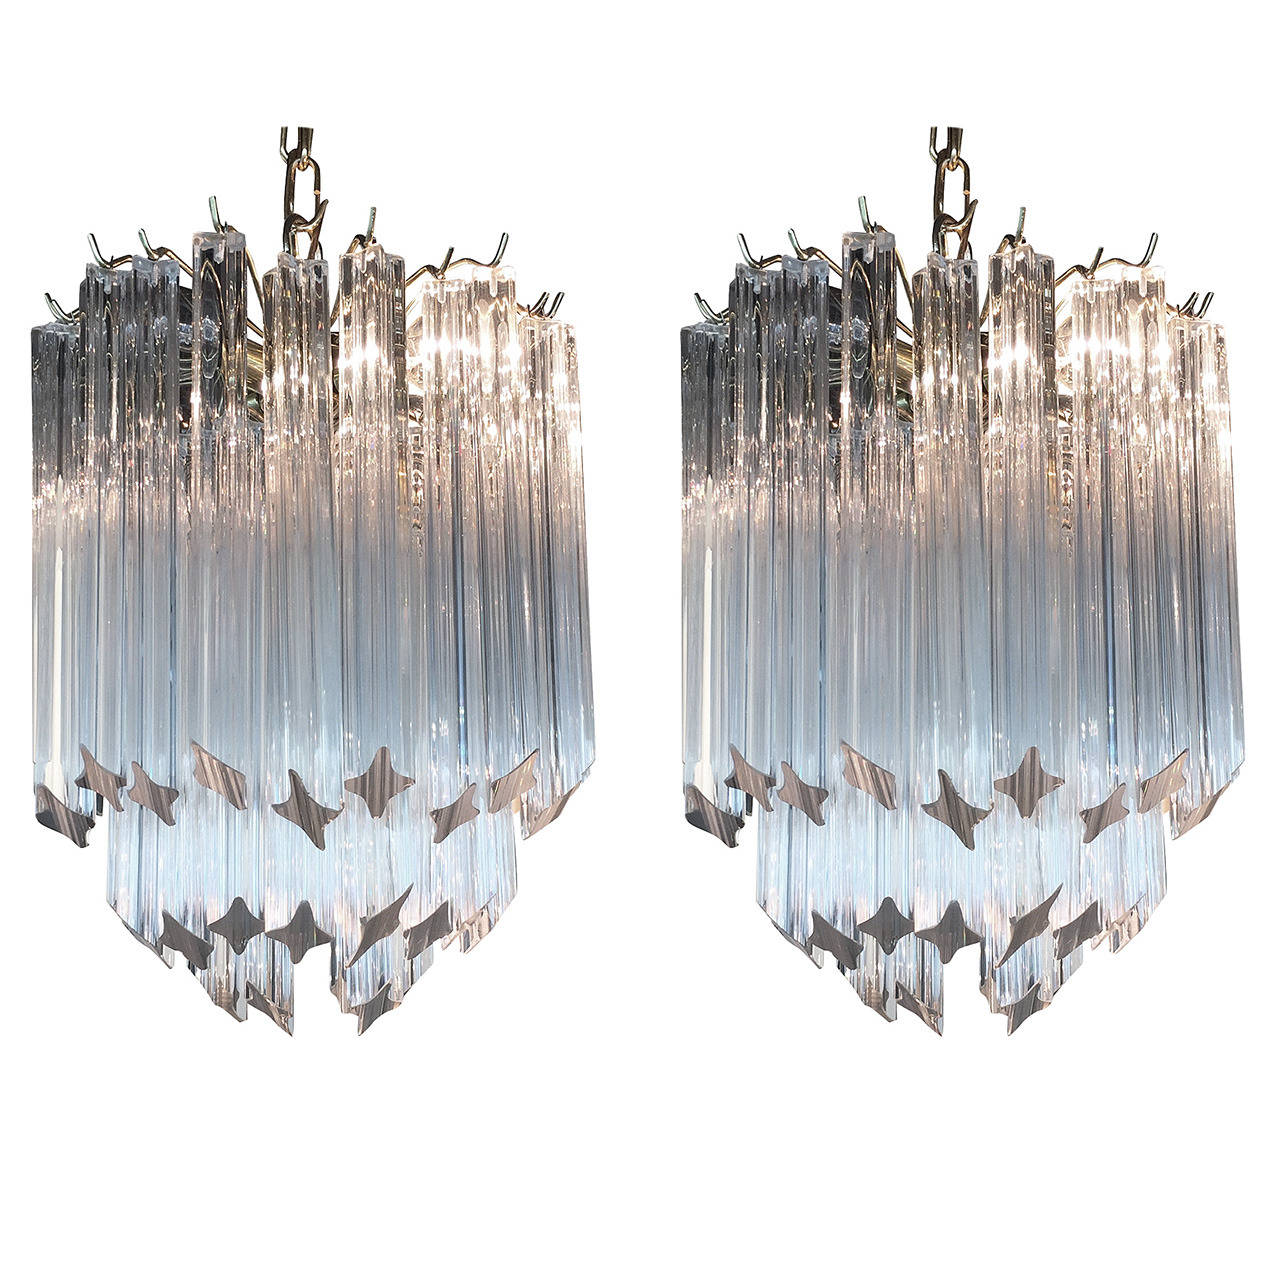 Pair of vintage small venini crystal chandeliers at 1stdibs pair of vintage small venini crystal chandeliers 1 arubaitofo Image collections